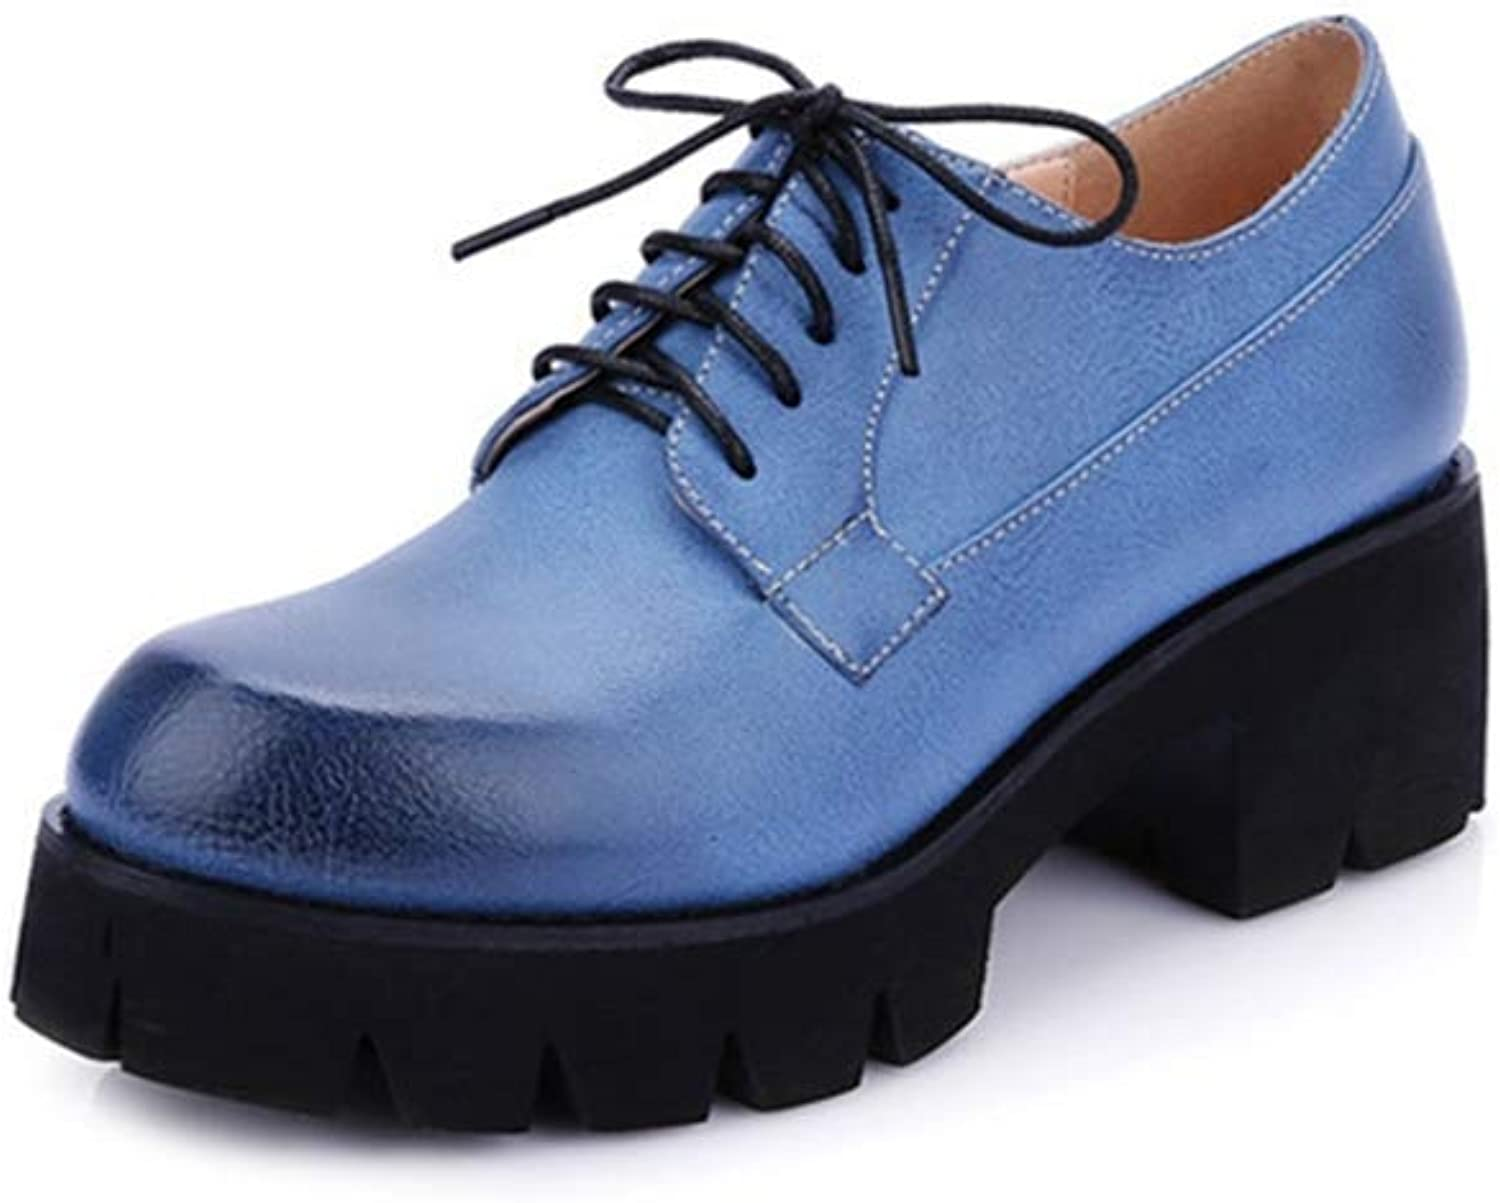 BMTH Women's Classic Platform Oxford shoes Pumps Lace-up Round Toe Mid-Heel Comfort Dress Loafer shoes